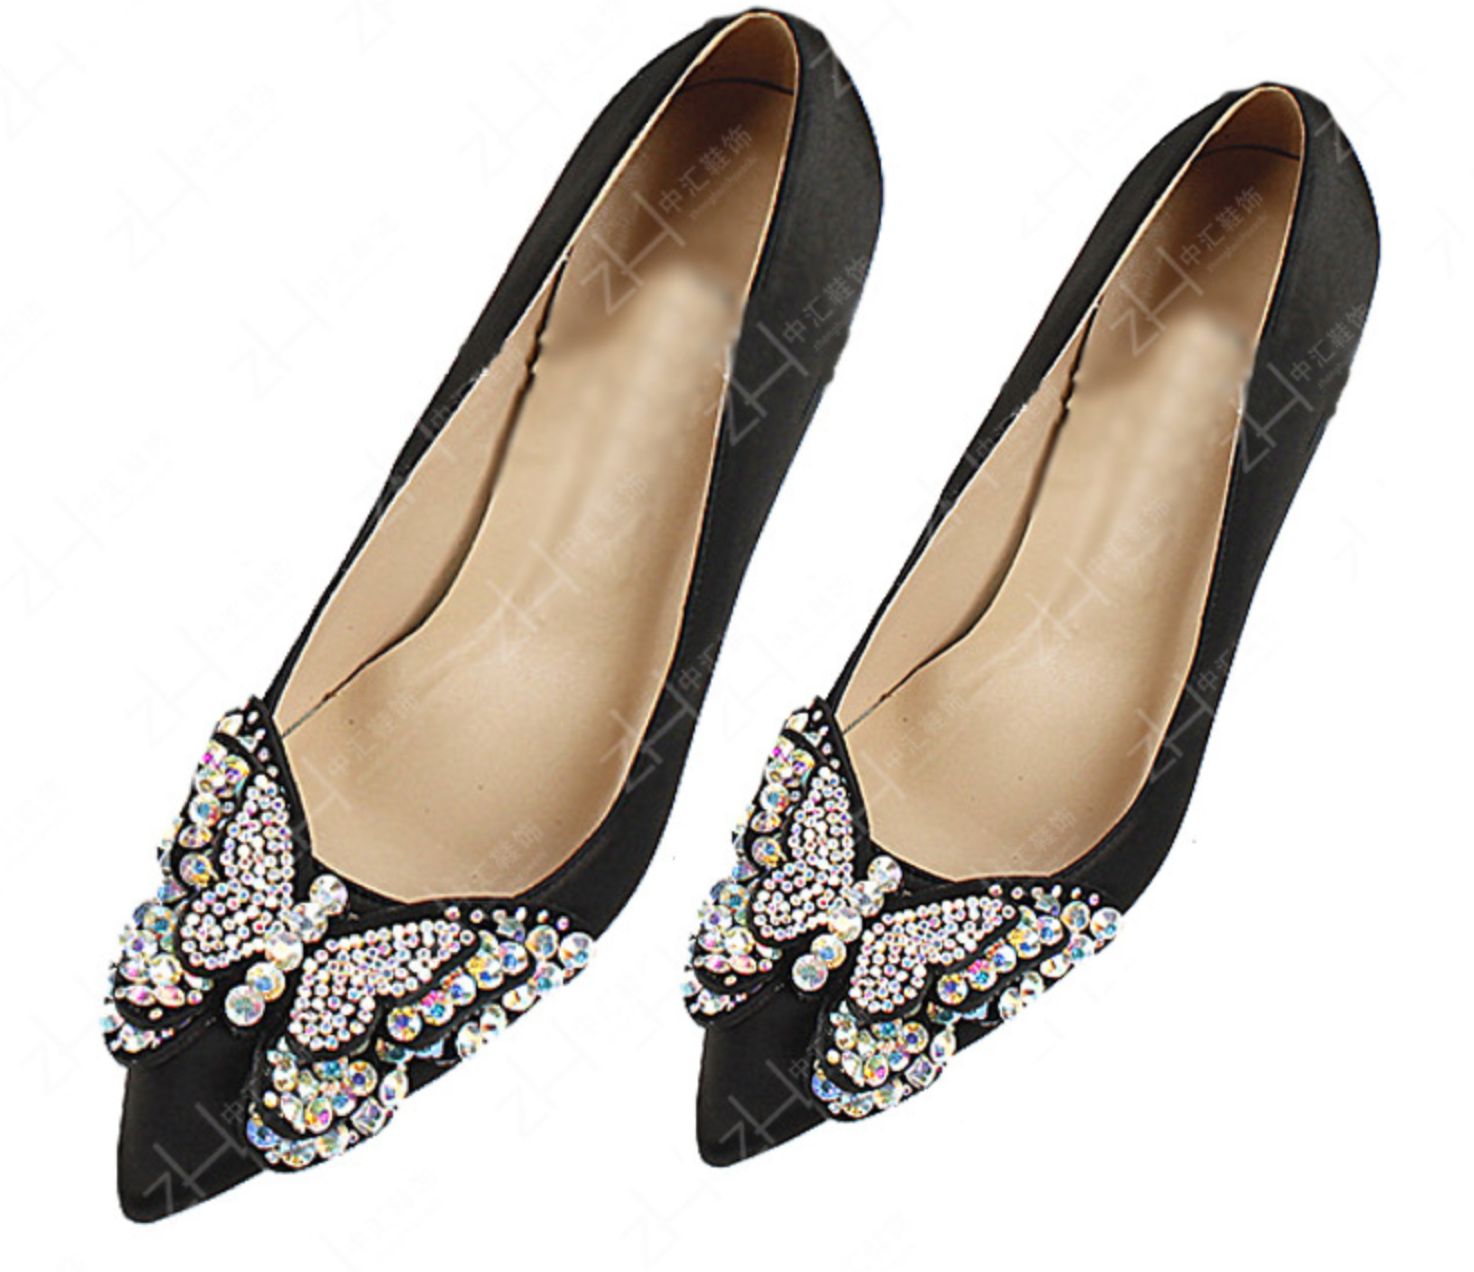 A Pair Retro Style Black Butterfly Crystal Bow High Heel Applique Shoe Clips